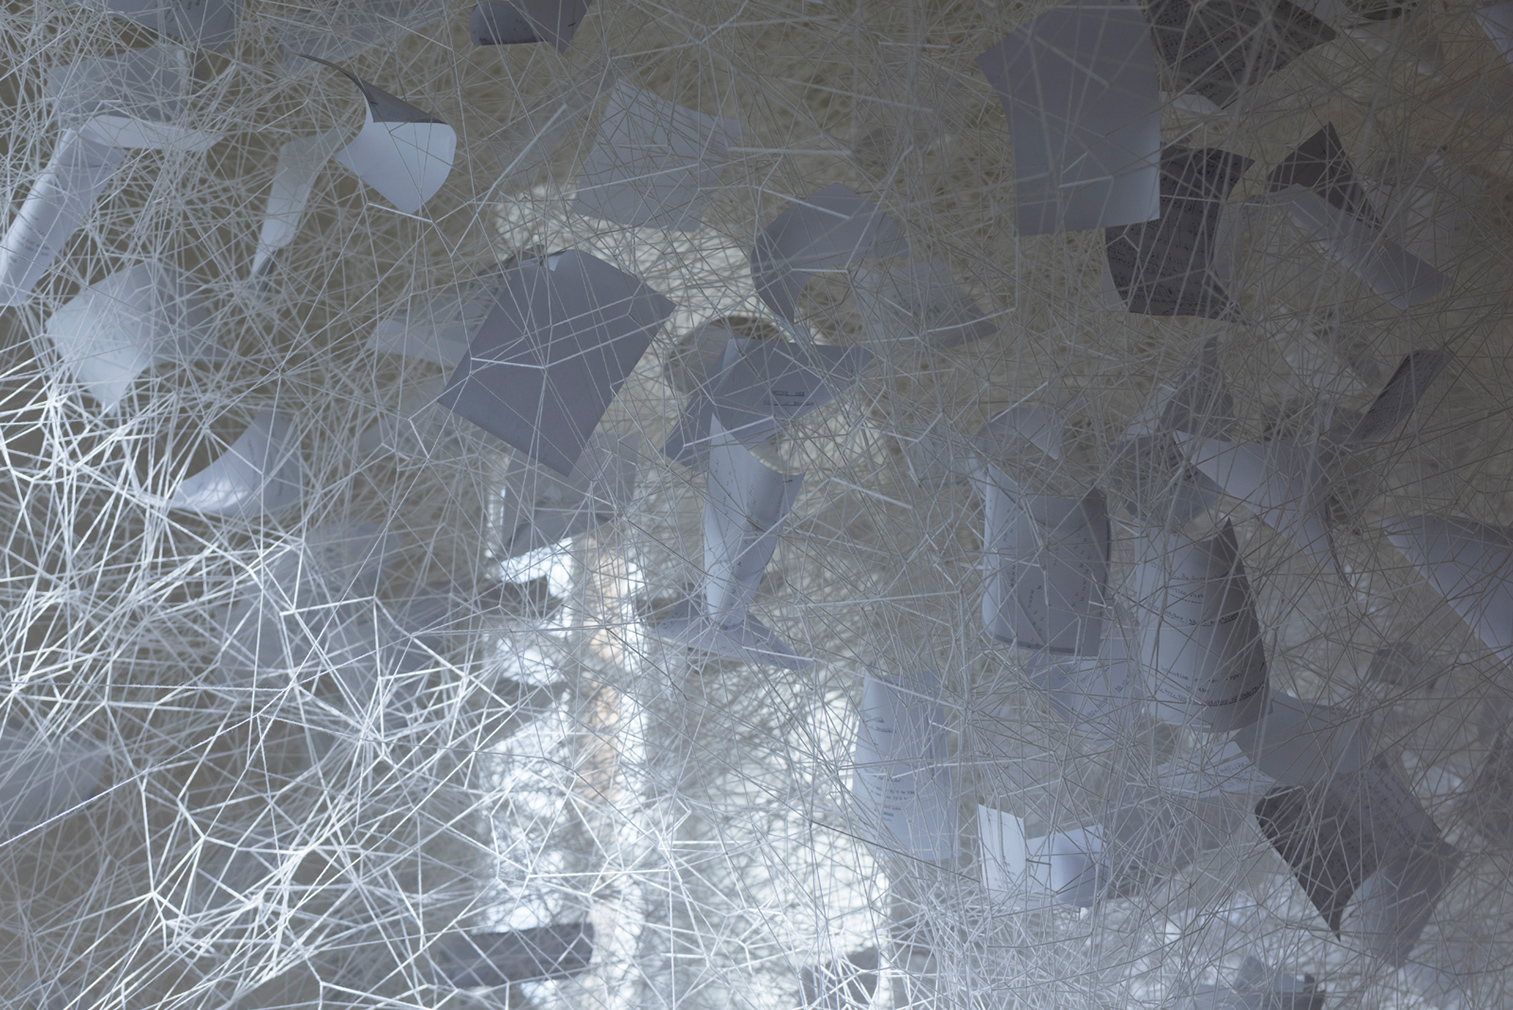 Chiharu Shiota, Beyond Time, 2018. White thread, metal piano, musical notes. (c) VG Bild- Kunst, Bonn, 2018 and the artist. Courtesy Yorkshire Sculpture Park. Photography: Jonty Wilde